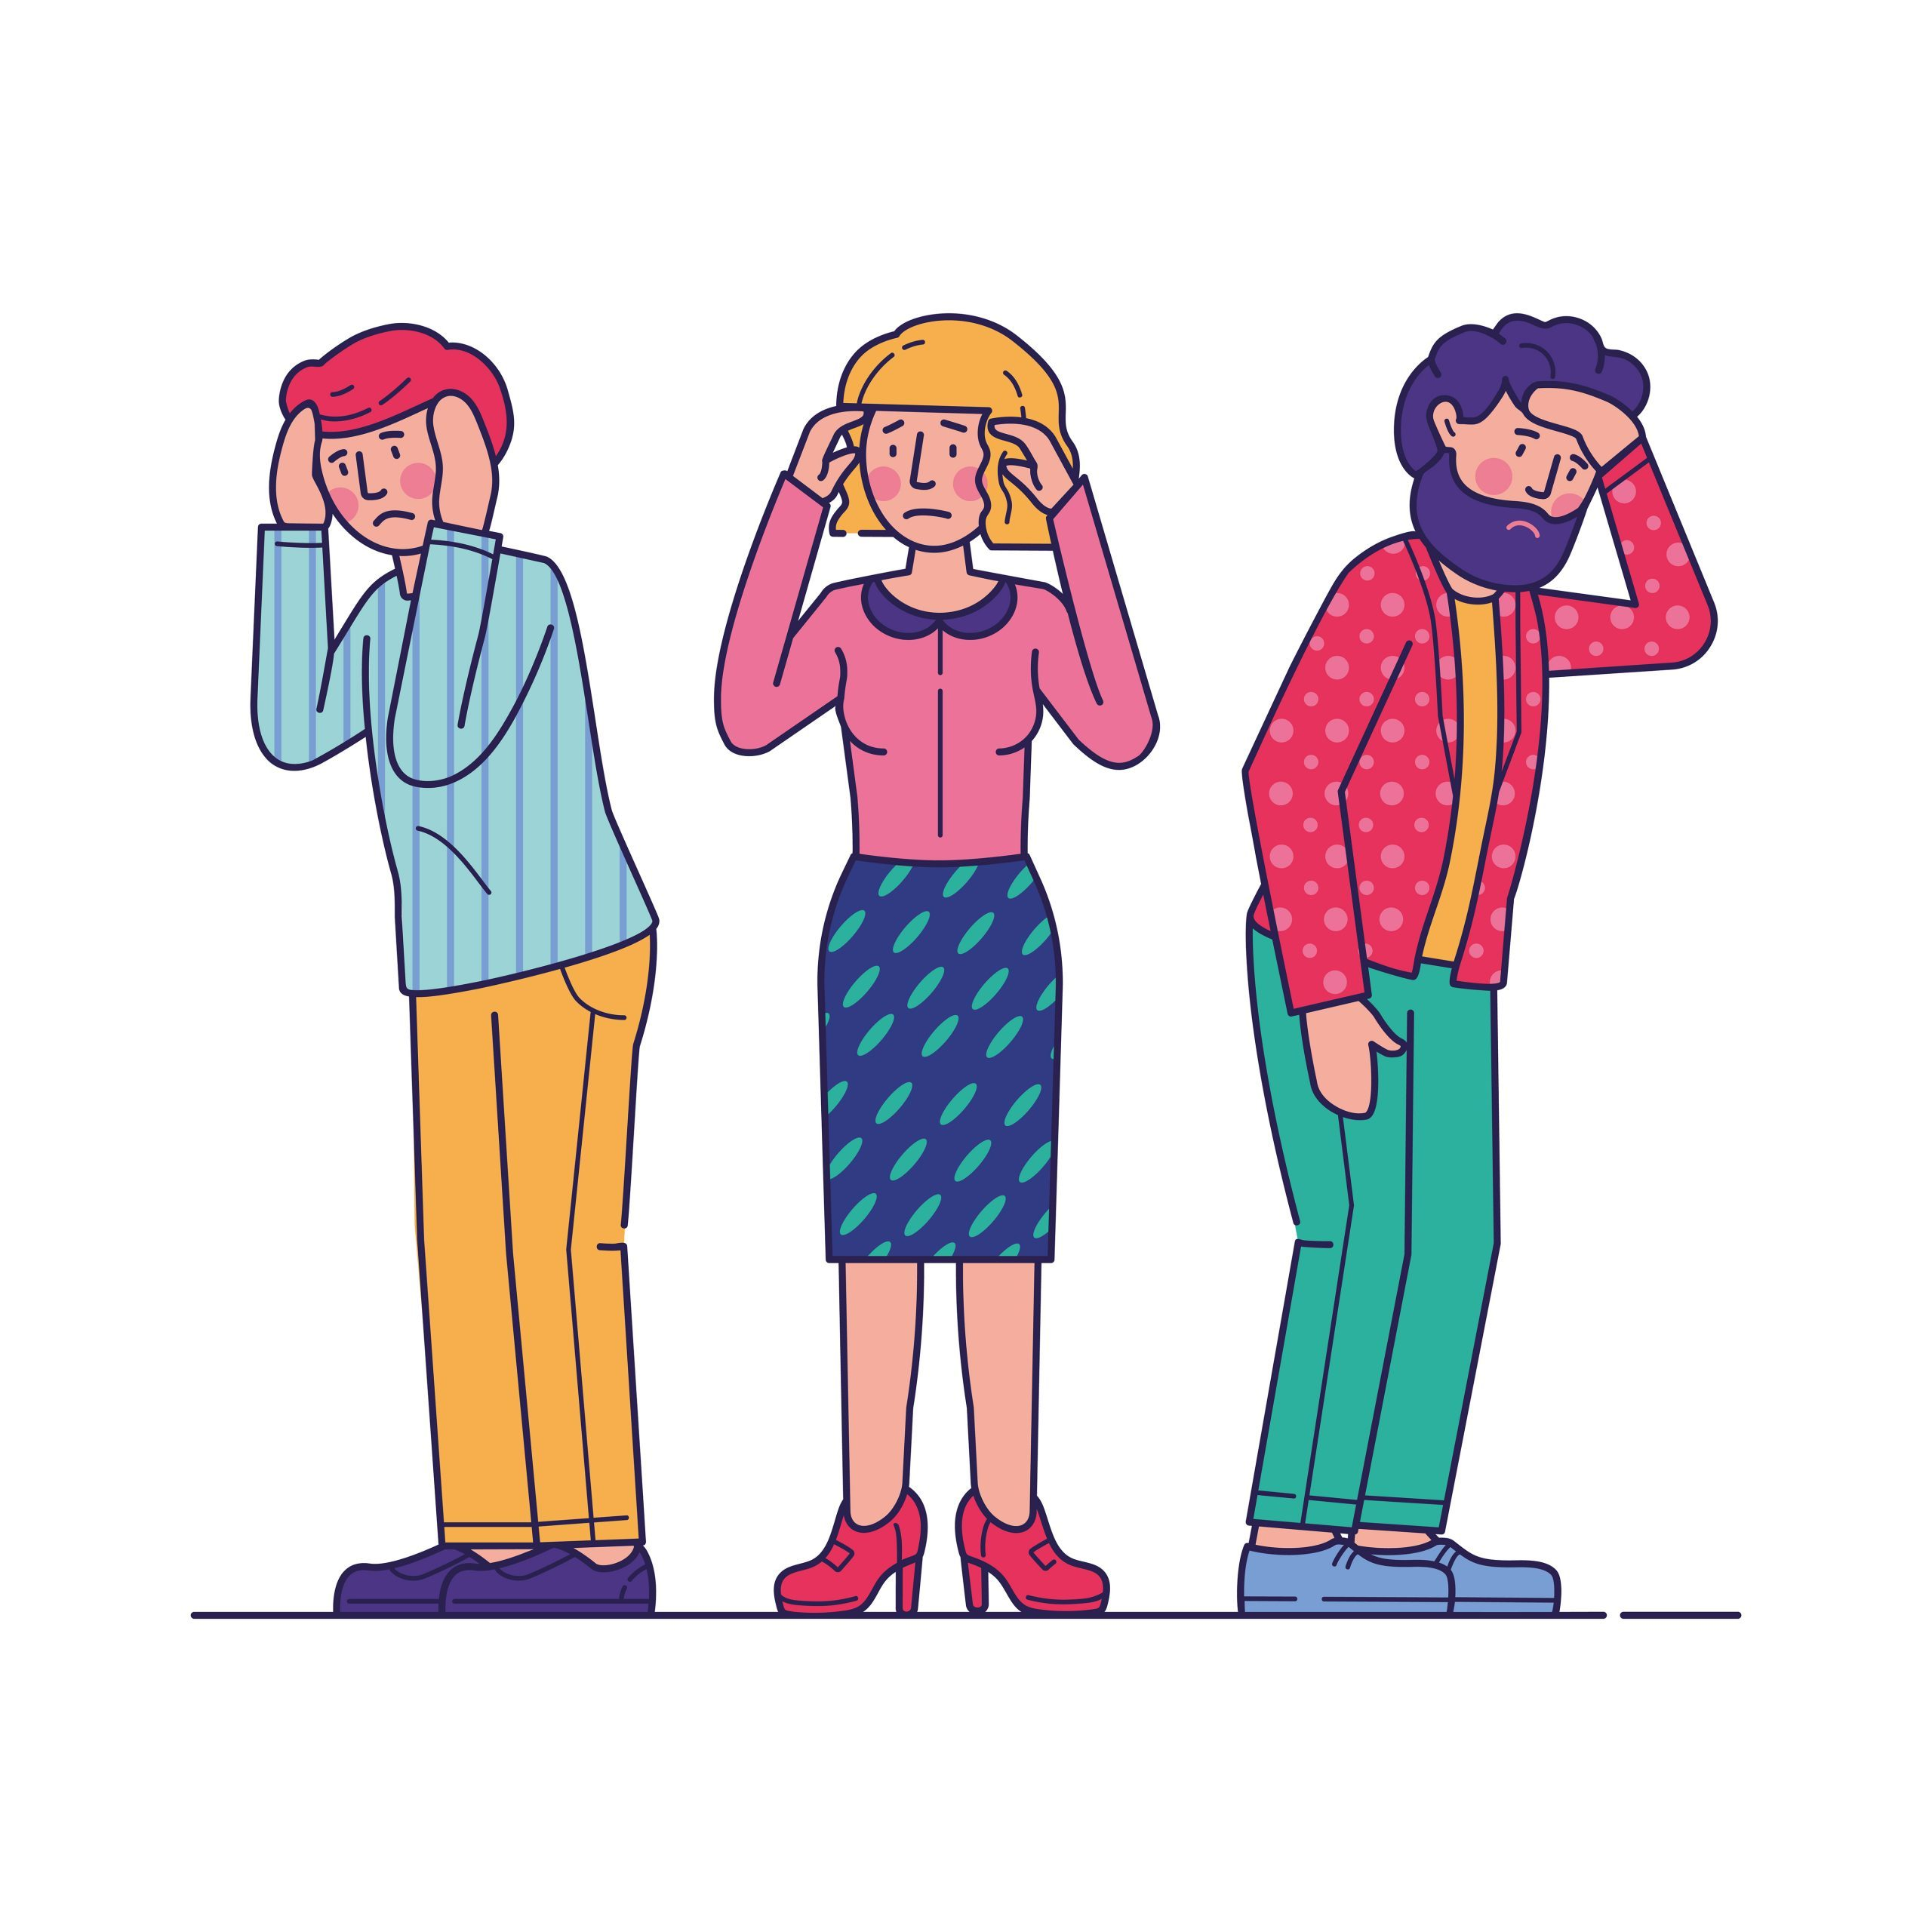 Stressed men and woman feeling headache. Tired sad people holding head, having health problems. Vector illustration for depression, stress, migraine, trouble concept